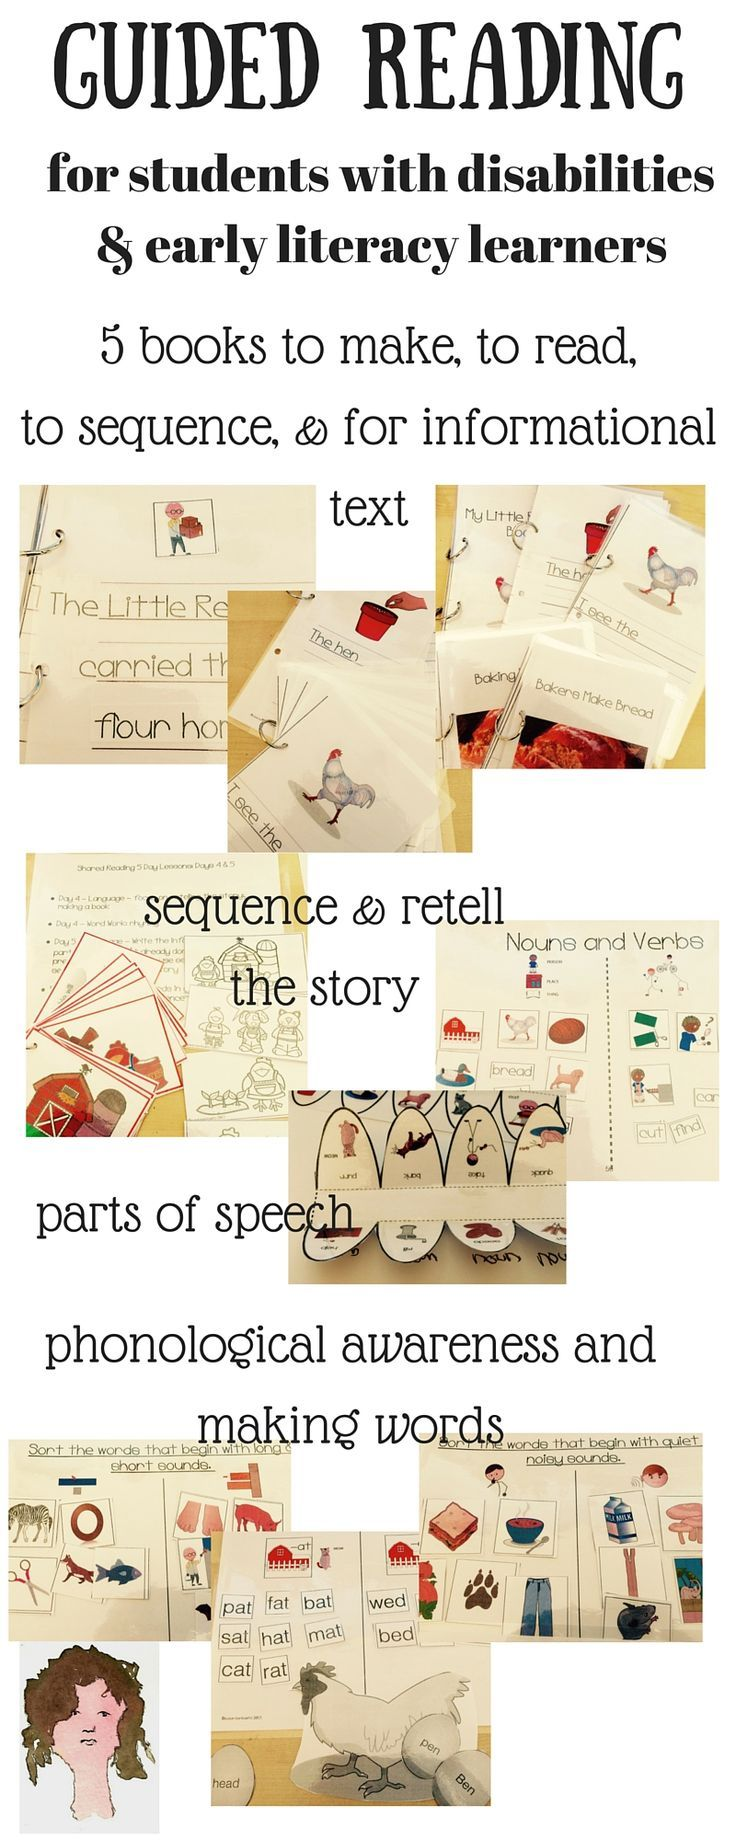 Incorporate shared reading and literacy instruction into your group of special education students with the materials for The Little Red Hen, covering vocabulary, sequencing, comprehension, retelling, grammar, reading & writing & word work, and more.This has been written for students with special needs, but is also appropriate for general ed and differentiated learning.What's included?Discussion of shared reading Hierarchy of comprehension questionsCCSS coveredI Can posters for CCSS/ ...